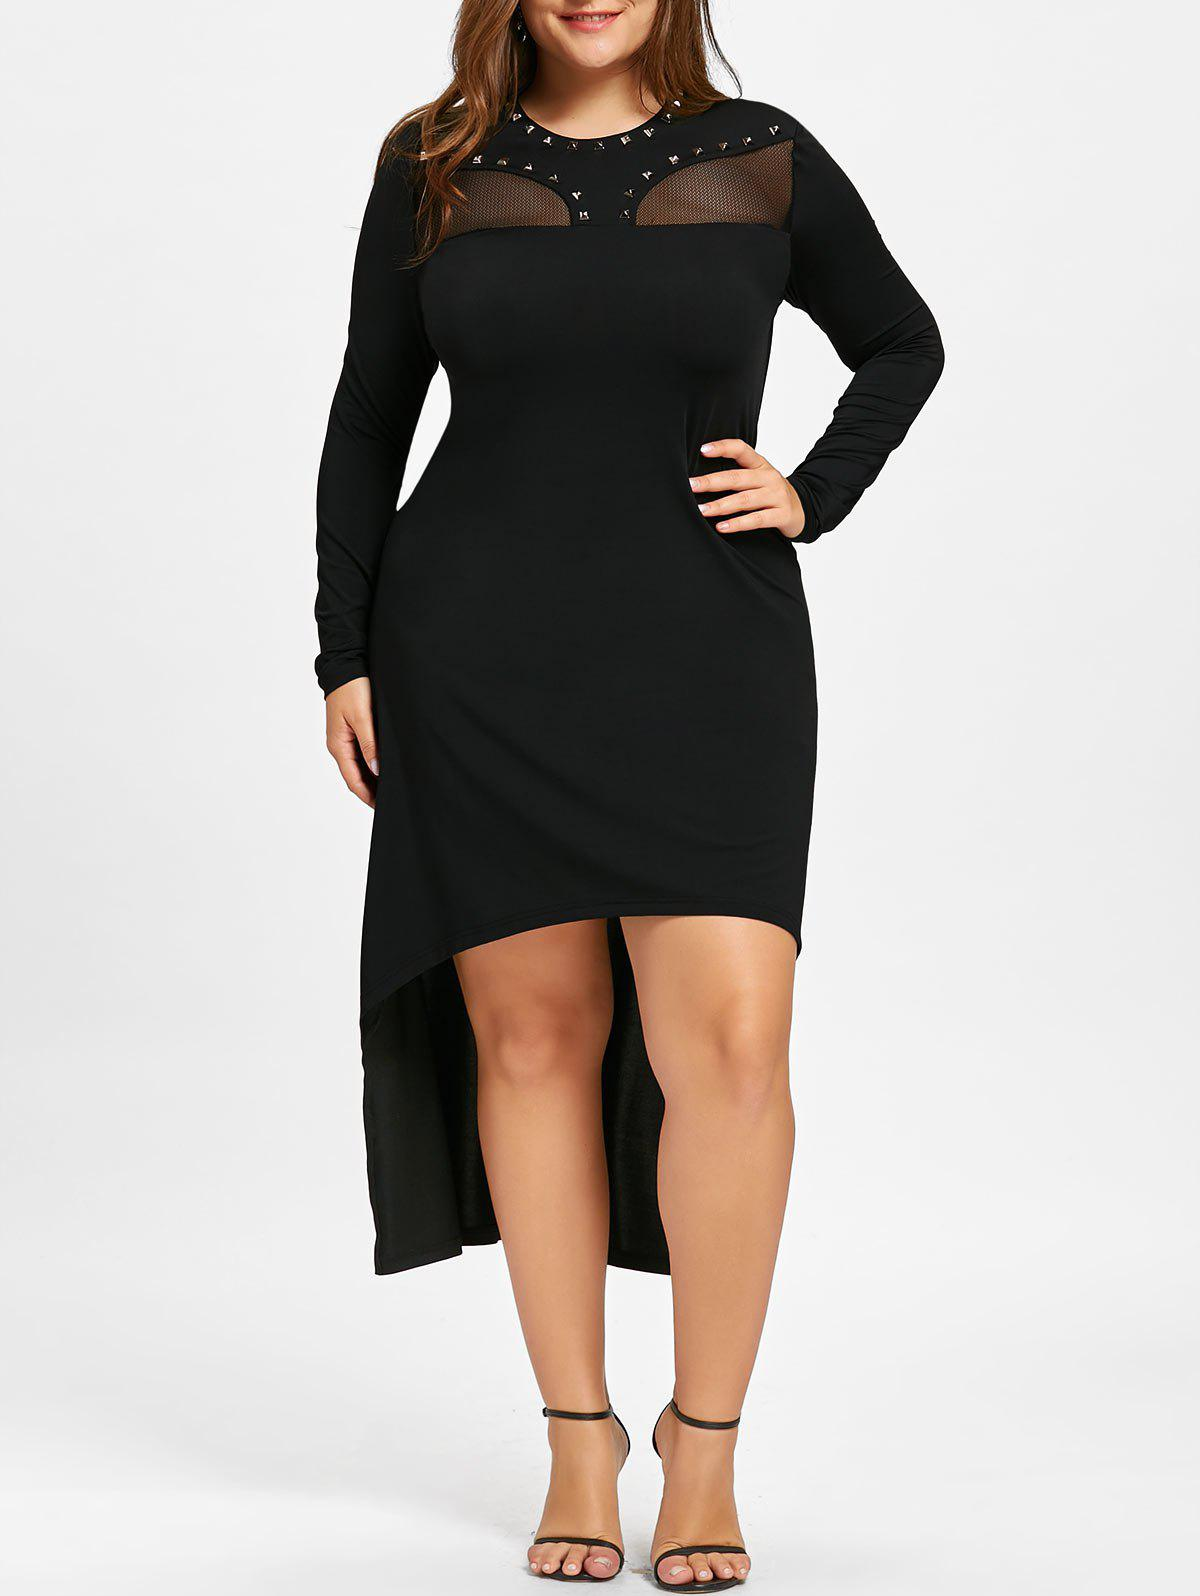 Plus Size Mesh Insert Dip Hem Dress plus size embroidered mesh insert party dress